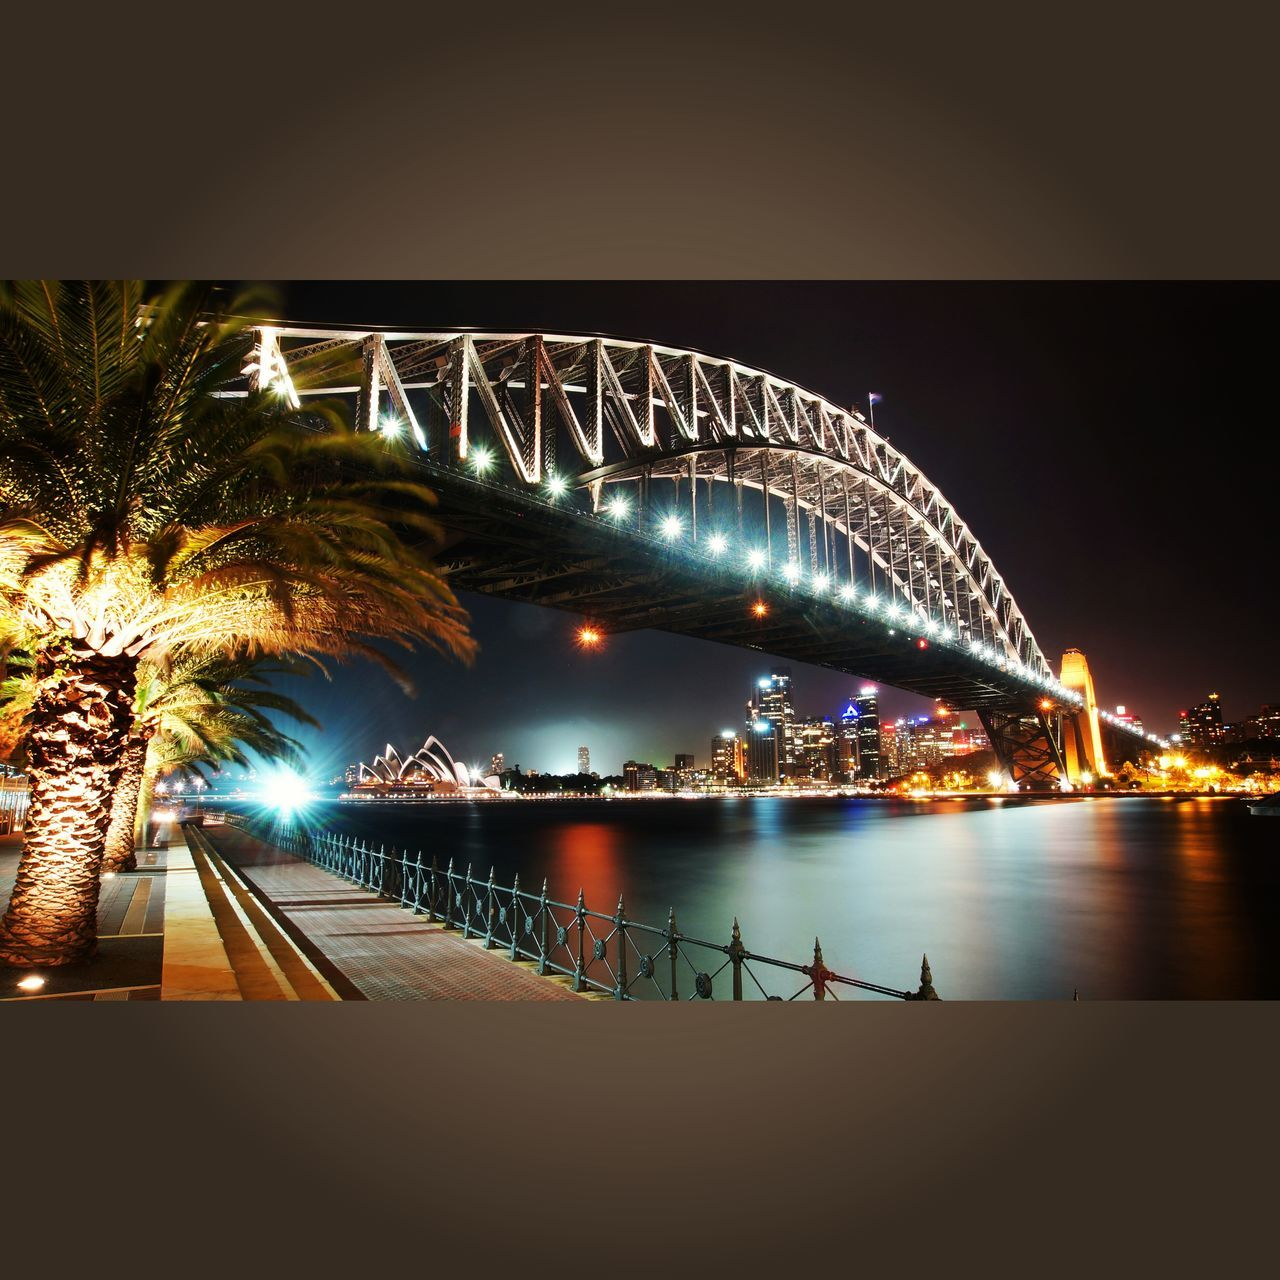 night, bridge - man made structure, illuminated, connection, architecture, transportation, outdoors, water, built structure, no people, clear sky, sea, travel destinations, sky, tree, nature